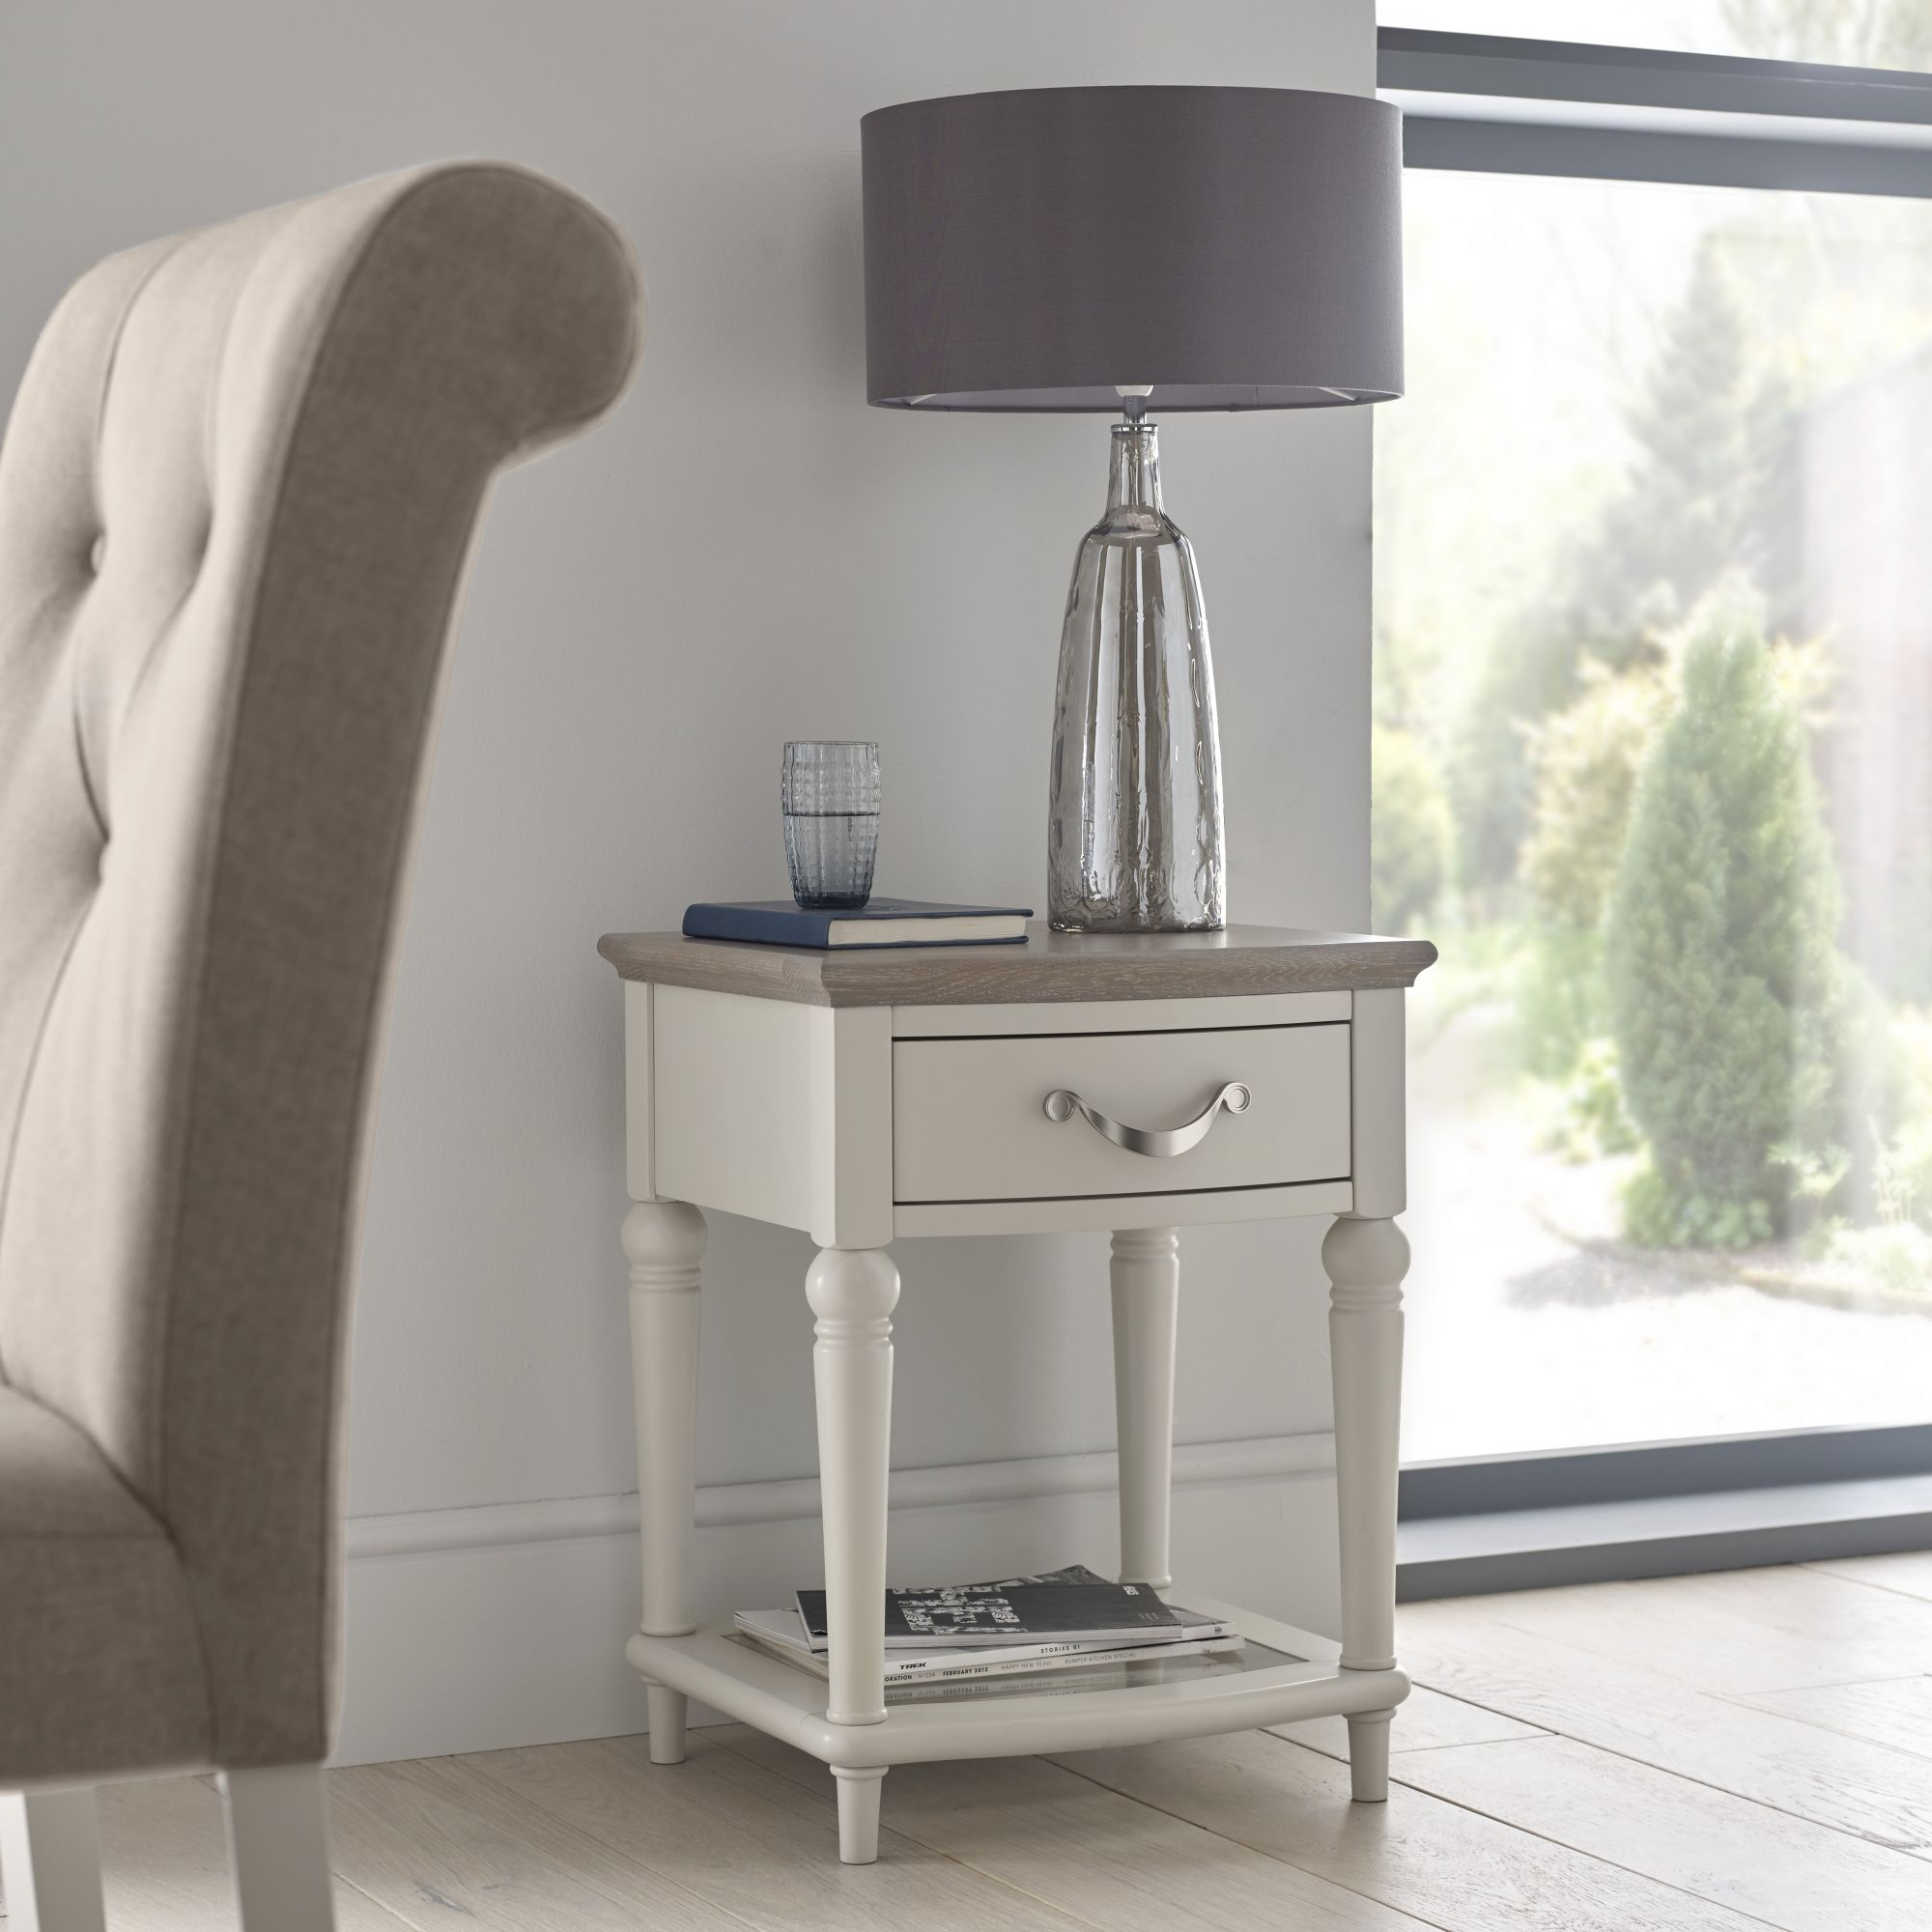 MONICA GREY LAMP TABLE - L45cm x D44cm x H57cm